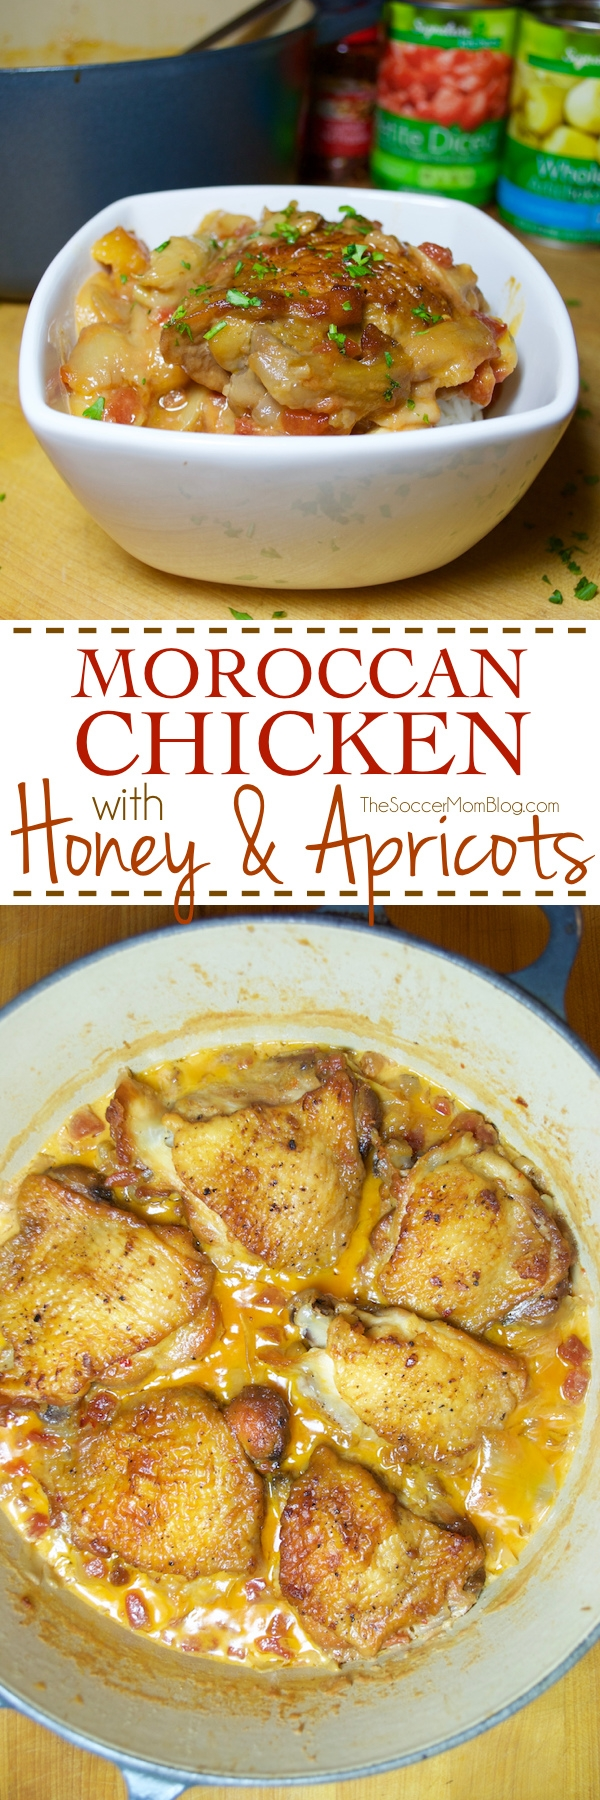 Rich Moroccan Chicken stew is the perfect mix of sweet, savory, & spicy! Recreate a favorite traditional dinner at home with this surprisingly easy recipe.